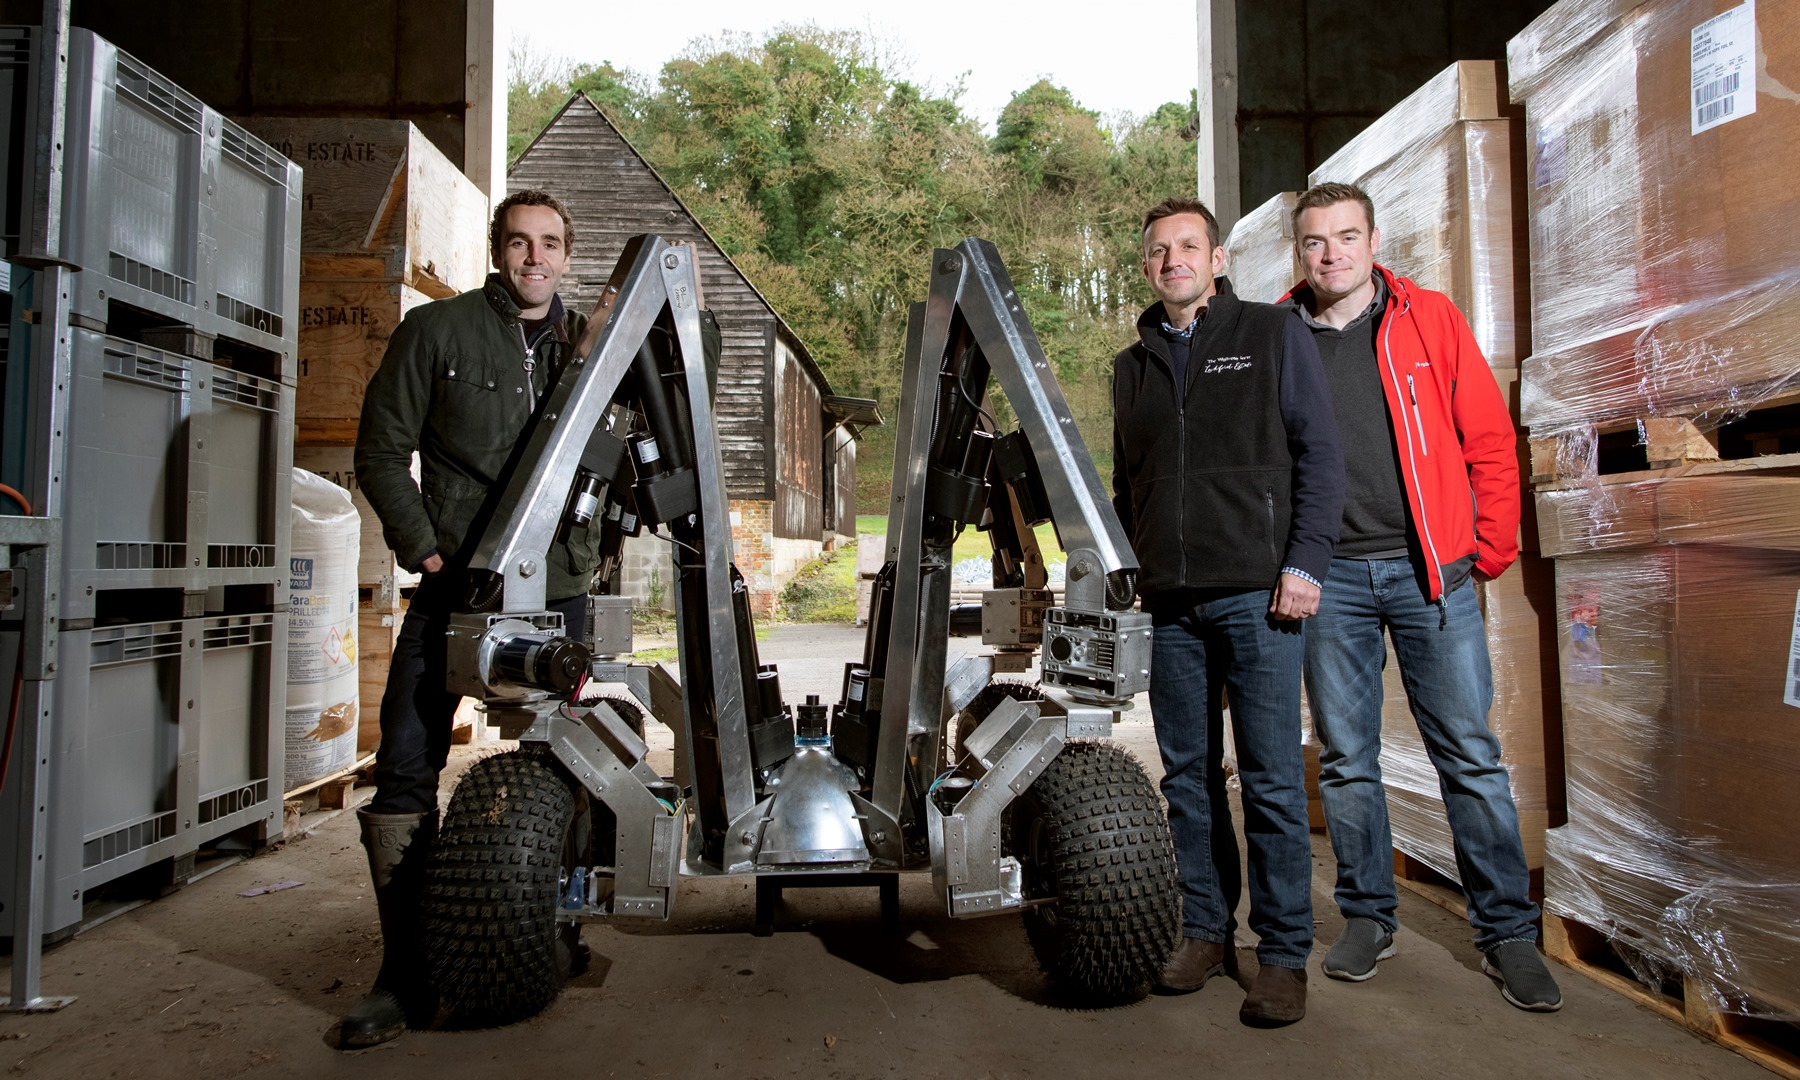 Harry prototype robot together with Sam Watson Jones, co-founder, Small Robot Company, Andrew Hoad, Partner & Head of the Leckford Estate, and Joe Allnutt, Head of Robot Awesomeness (credit Geoff Pugh)